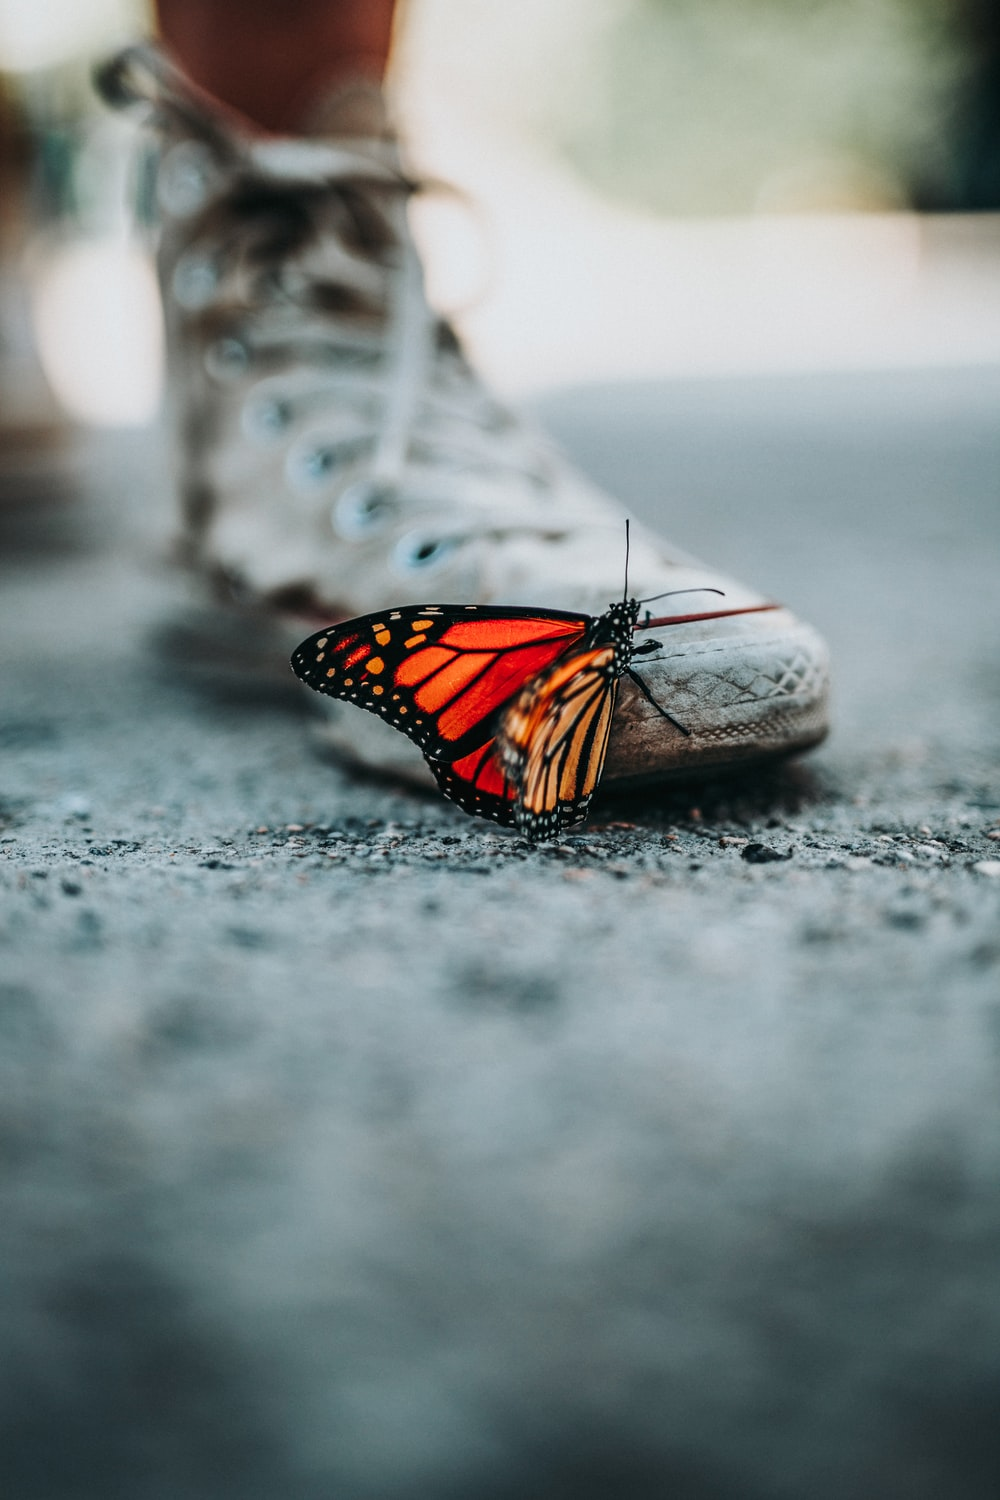 selective focus photo of butterfly on shoe